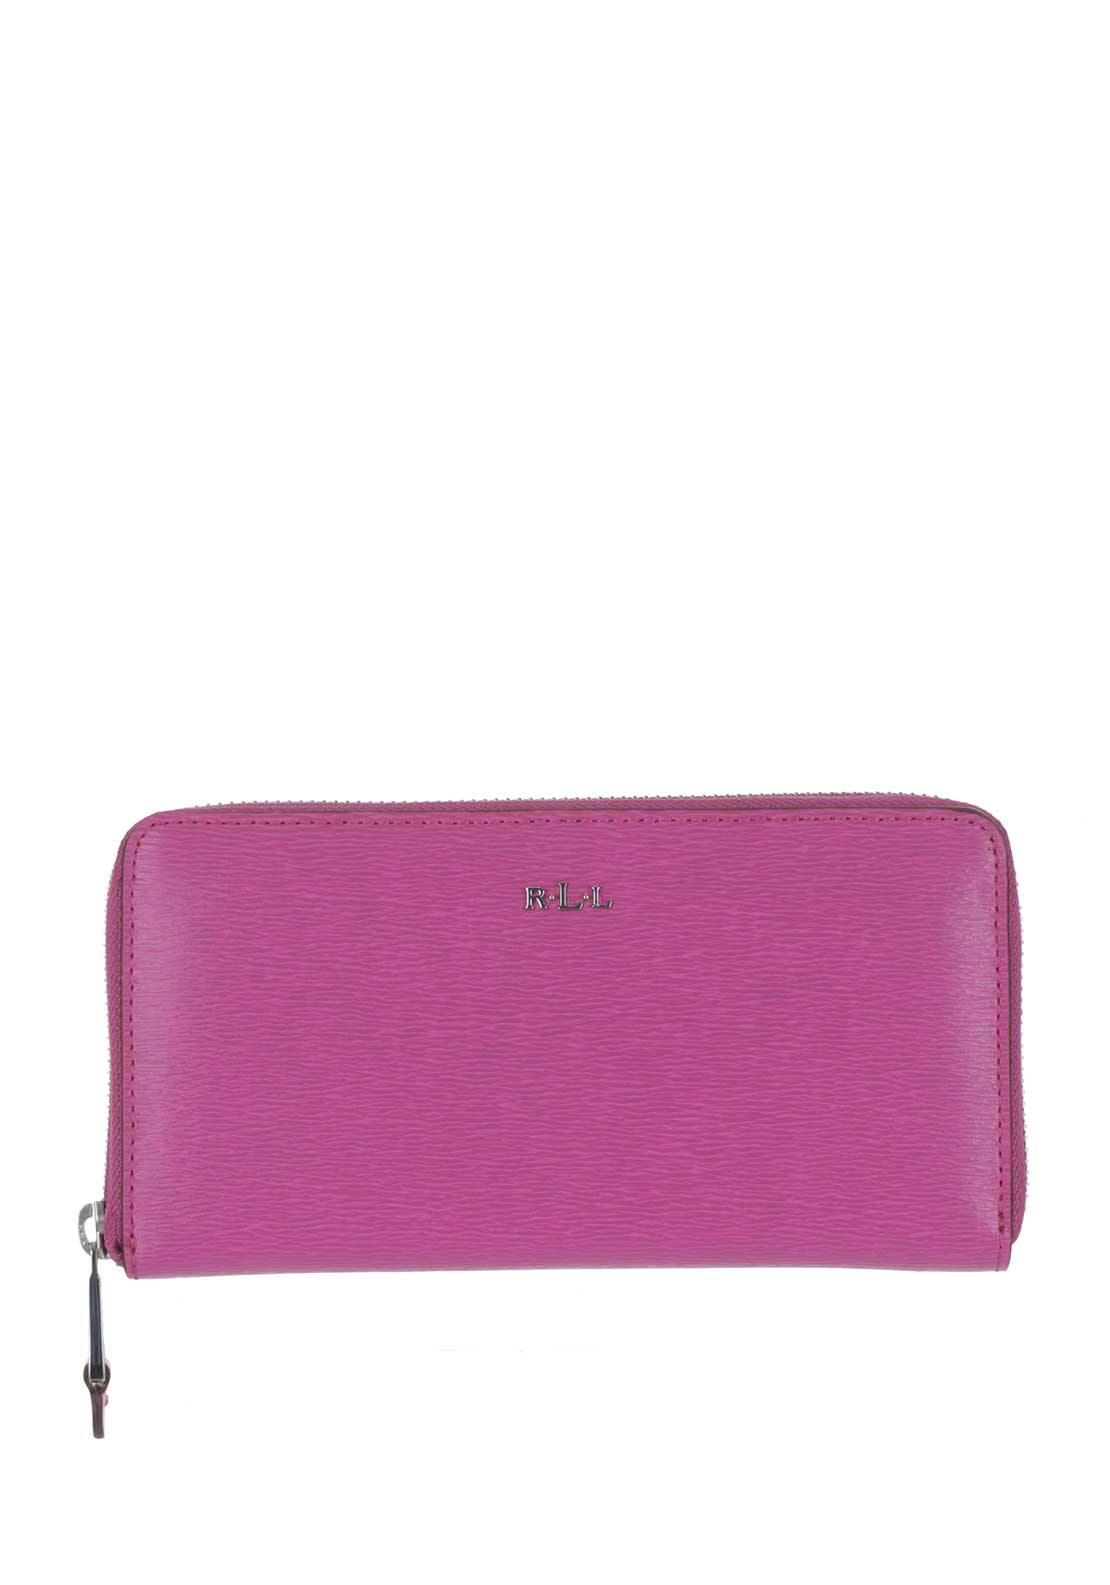 Ralph Lauren Zip Around Large Purse, Pink